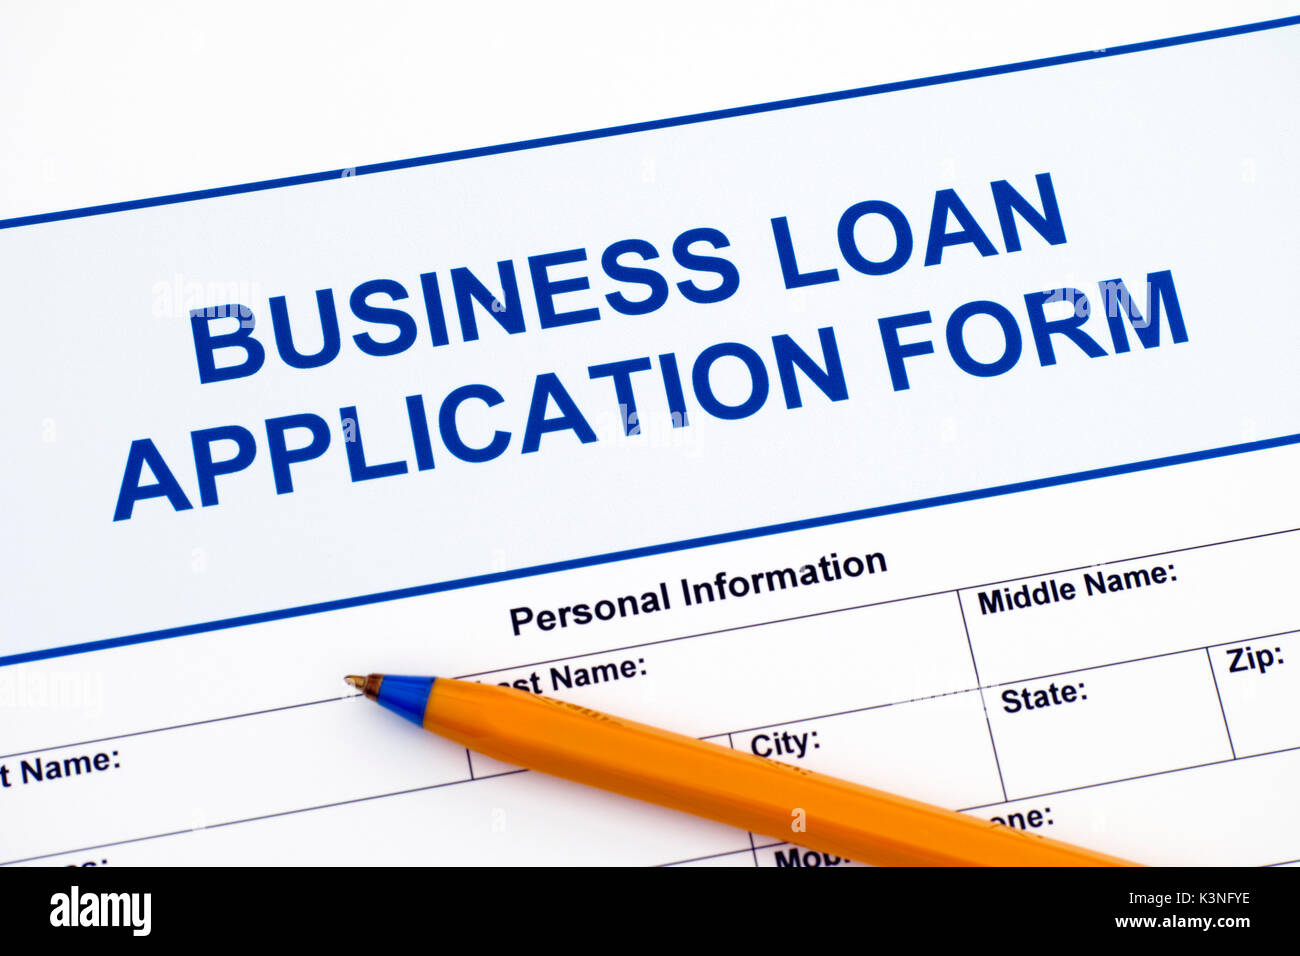 Business Loan Application Form with ballpoint pen. Stock Photo